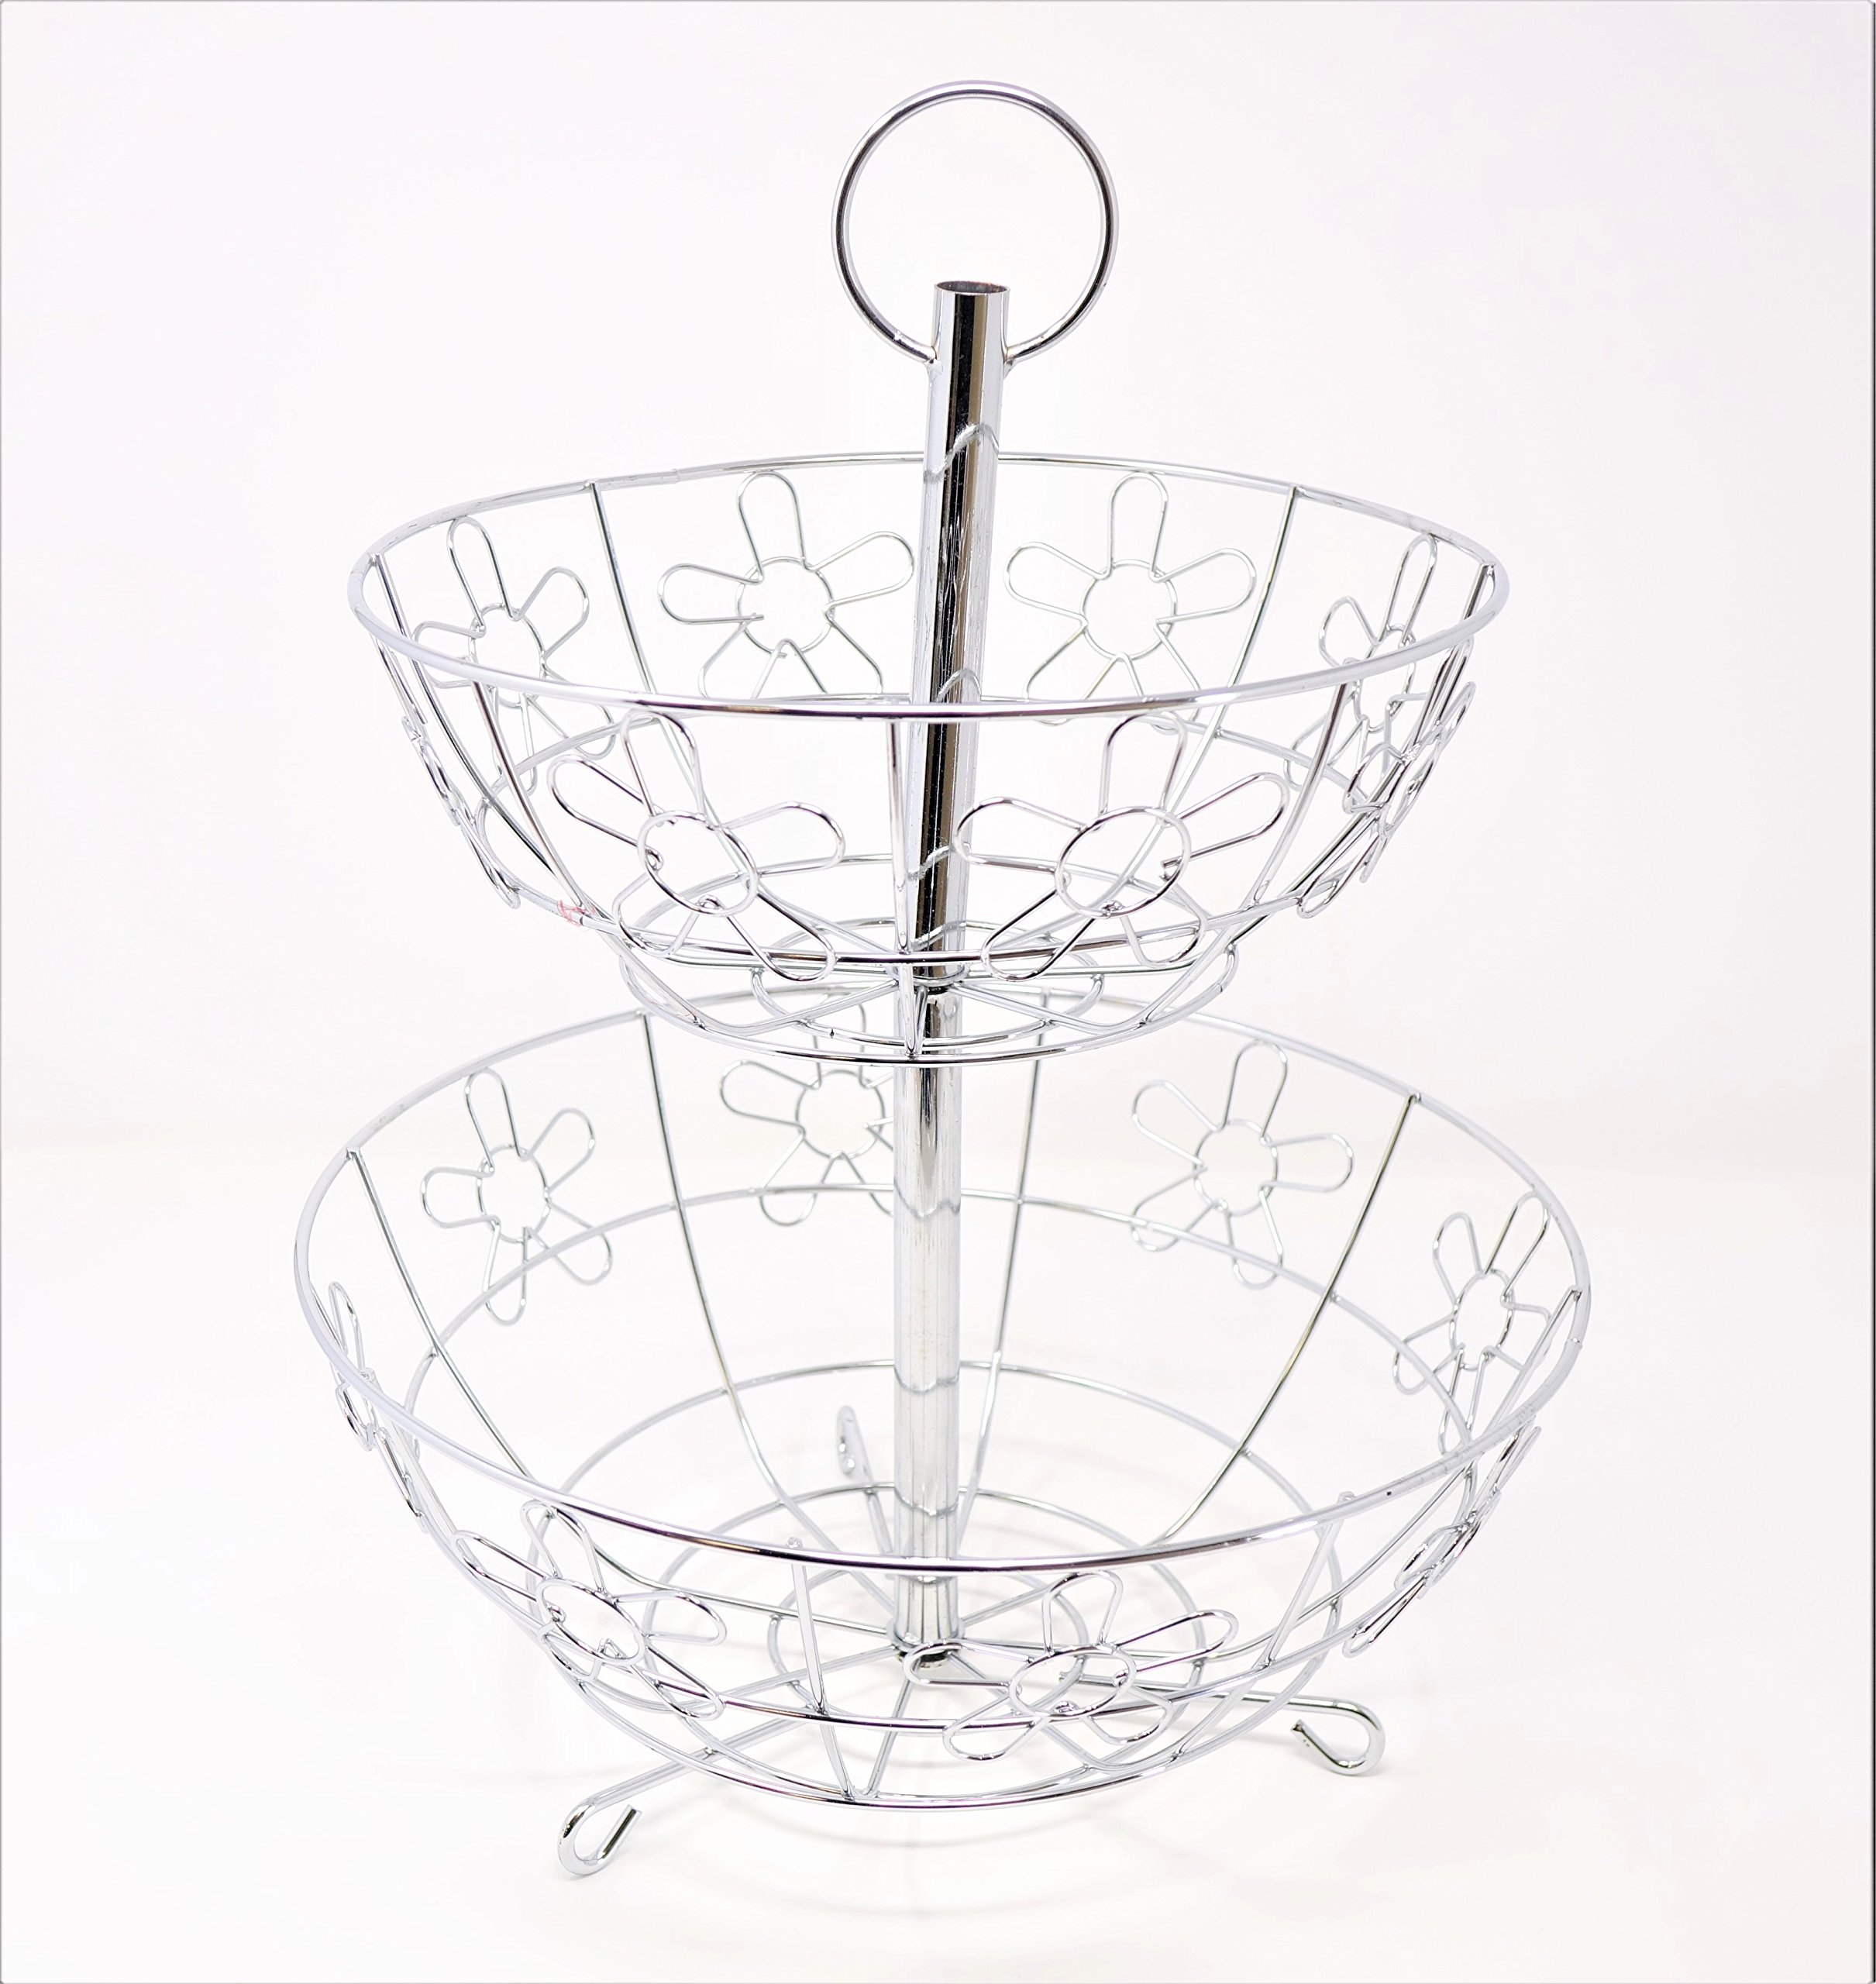 New Home Deal Stainless Steel Collapsible Multi Tiered Fruit Basket (2 Tier, Flower)